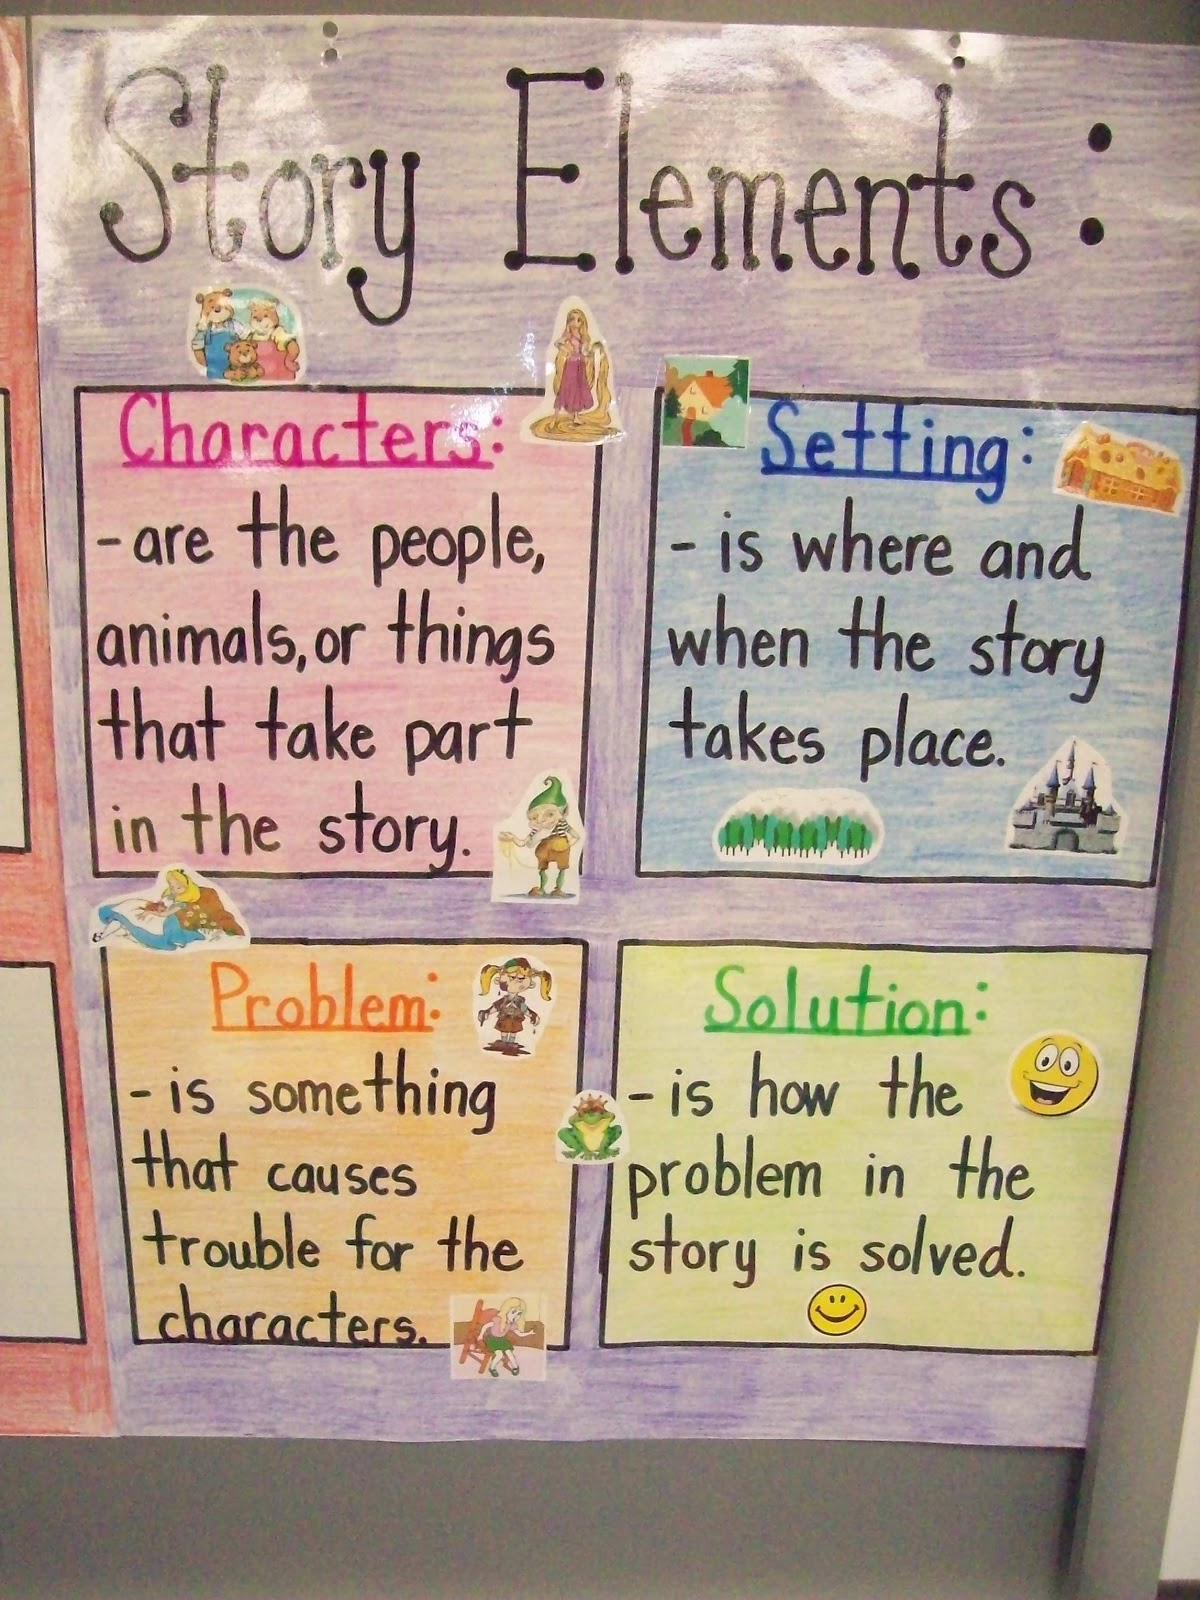 Original furthermore Daily Routines furthermore  likewise C E C D A C Cc B Bb besides Ead Efbbf Cec C Fb Fe C Ws Graphic Organizer Short Story Graphic Organizer. on 5th grade worksheet sequence of events